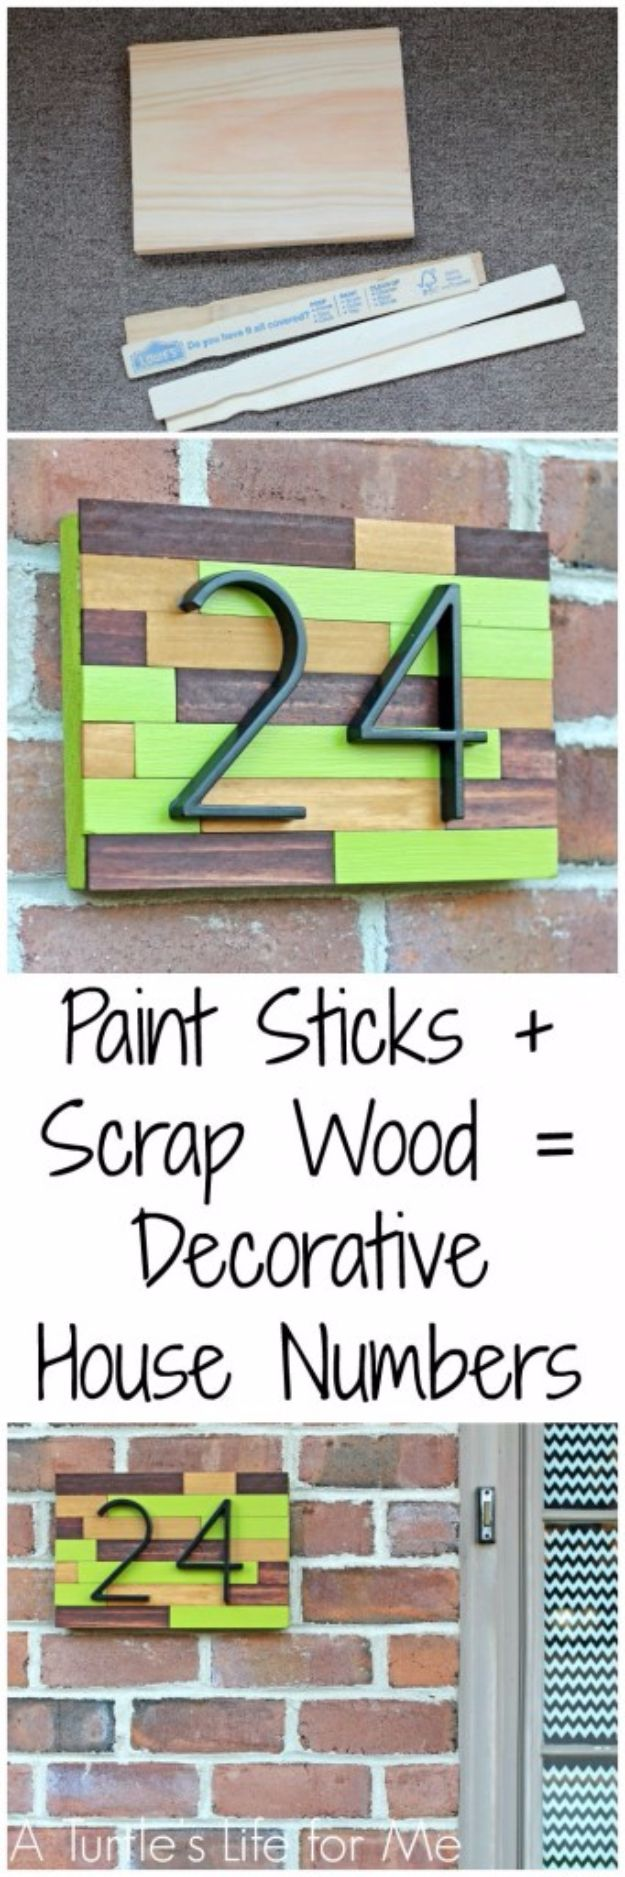 Best 25 house number plaques ideas on pinterest diy house 42 diy ideas to increase curb appeal diy house number plaquesdiy dailygadgetfo Choice Image